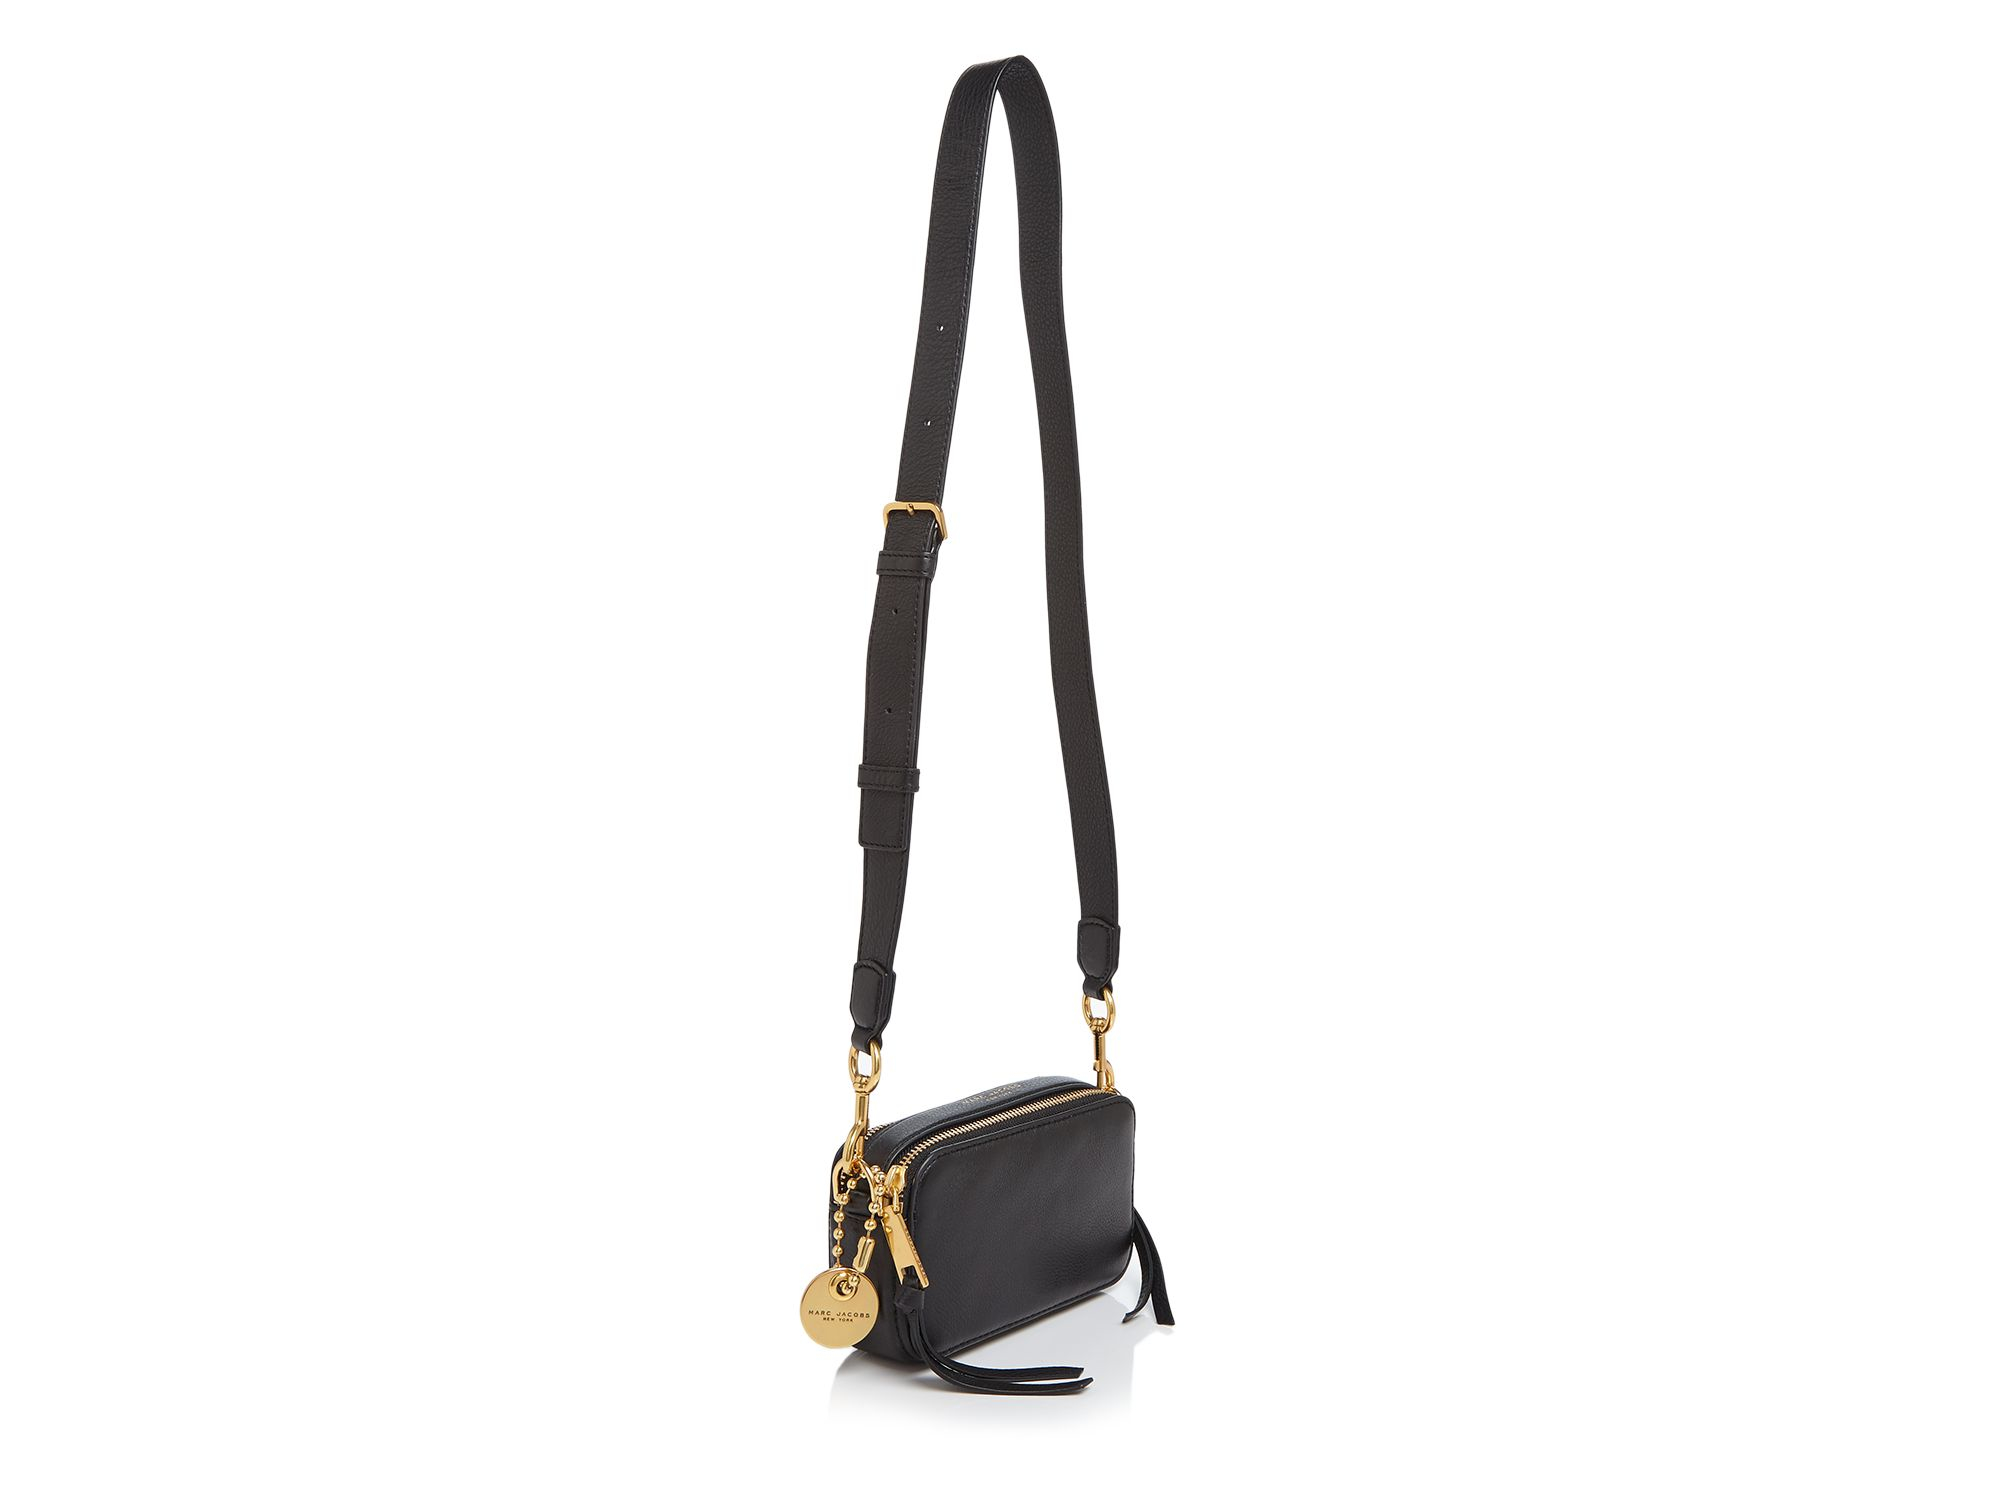 Marc Jacobs Recruit Crossbody Leather Camera Bag in Black